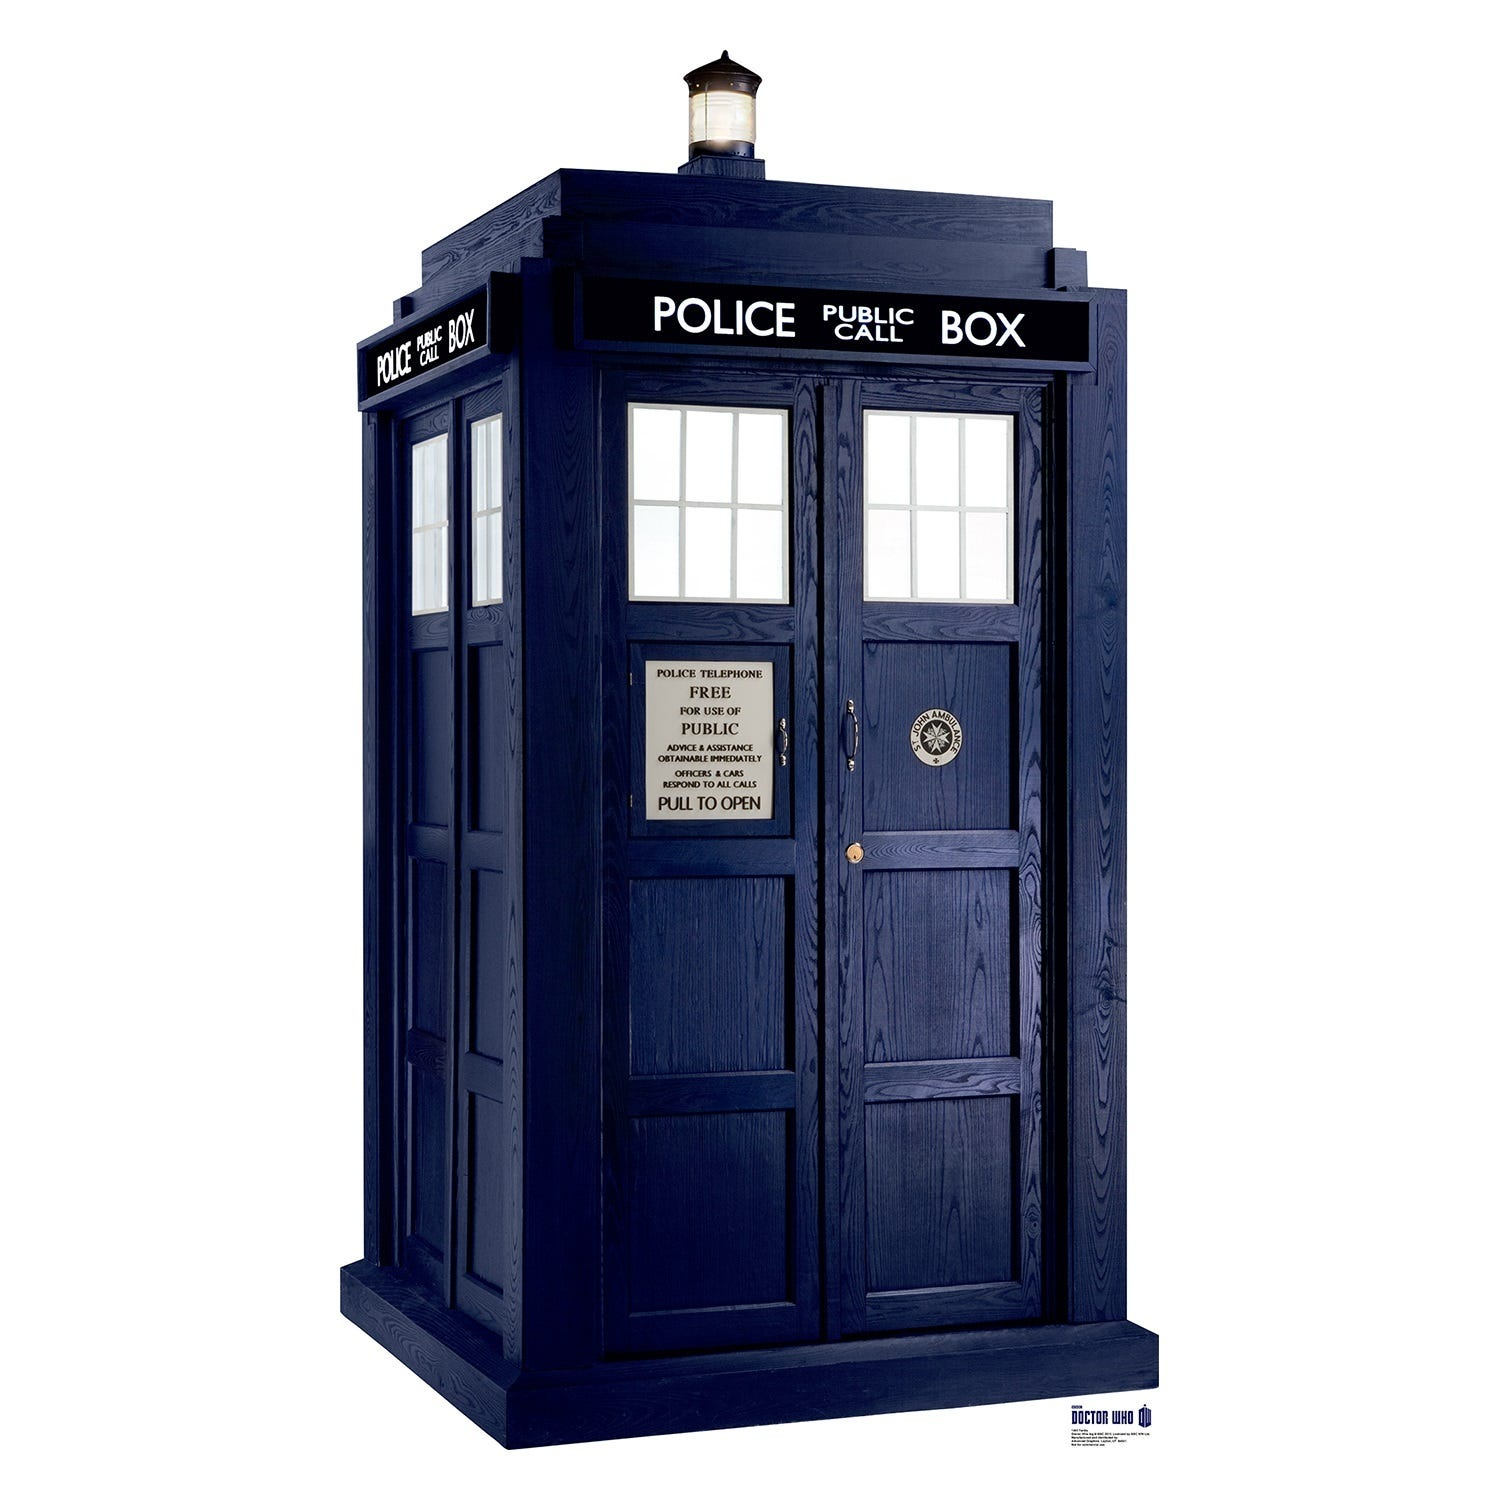 The Doctor Who telephone box. A symbol of the popular British television show.